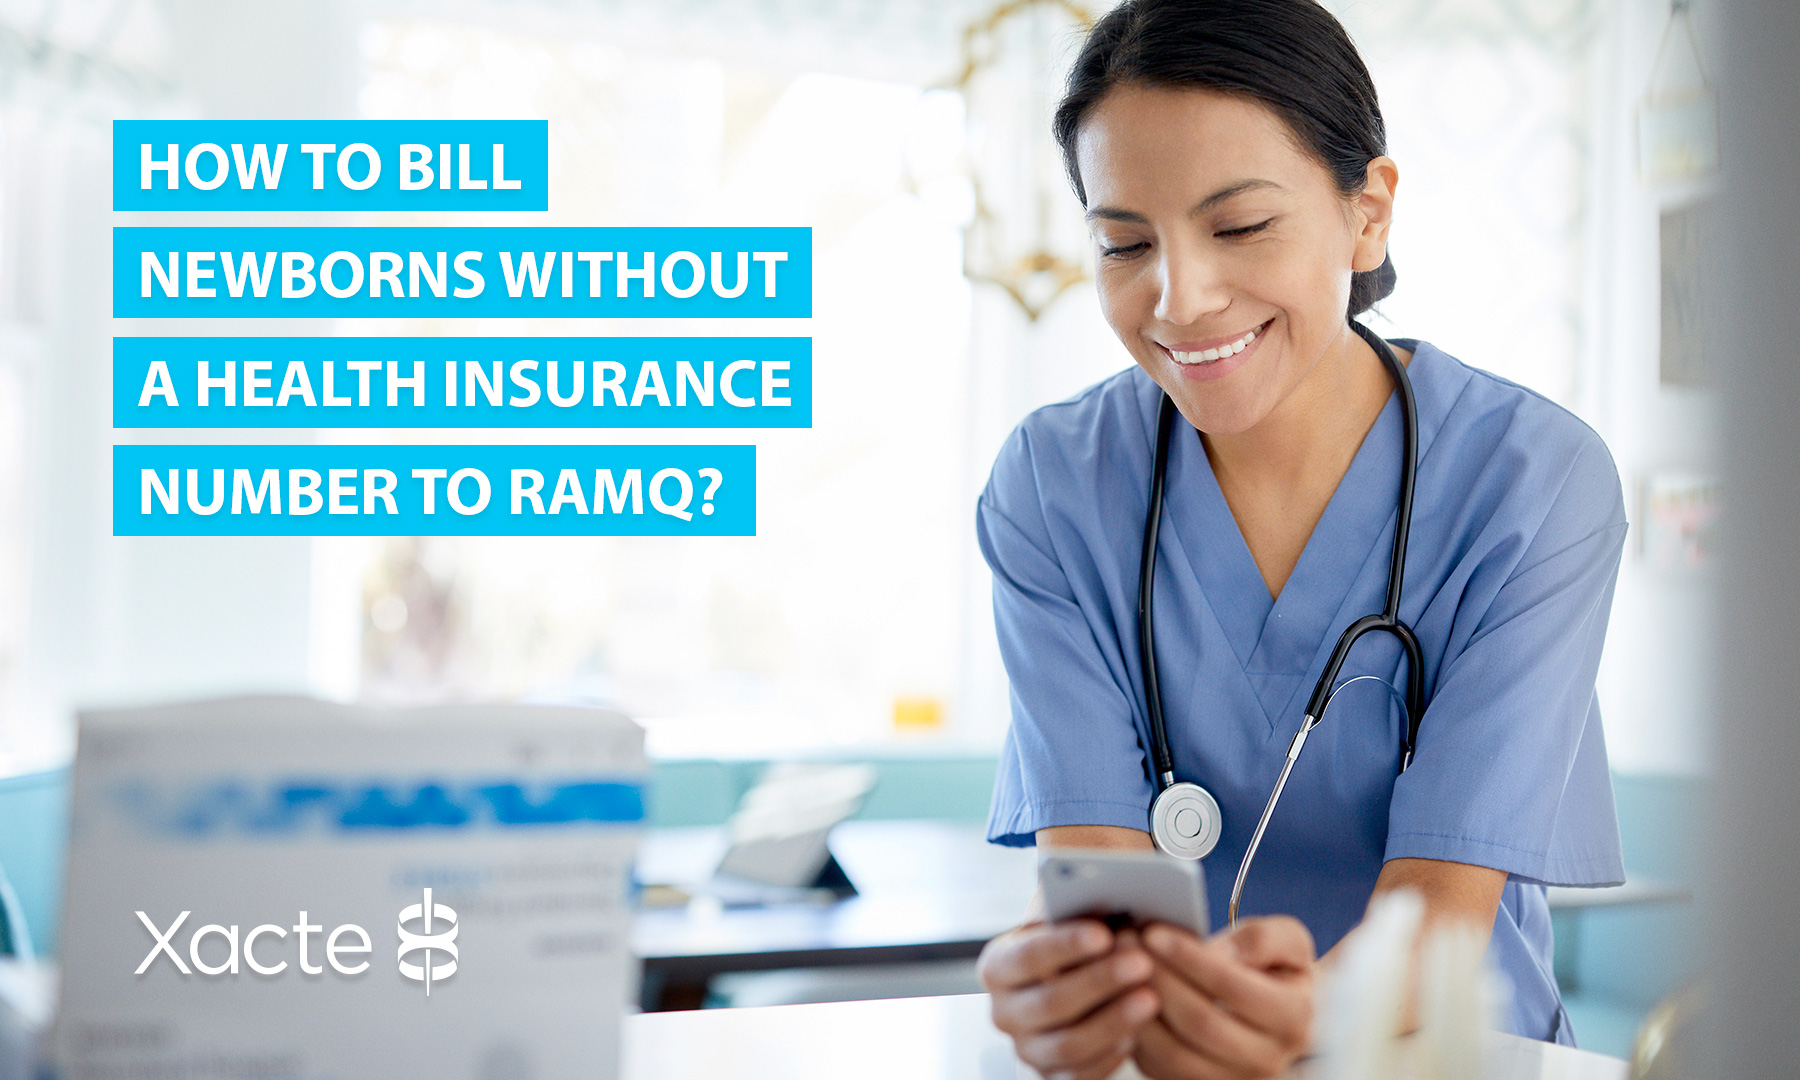 Bill Newborns Without a Health Insurance Number to RAMQ